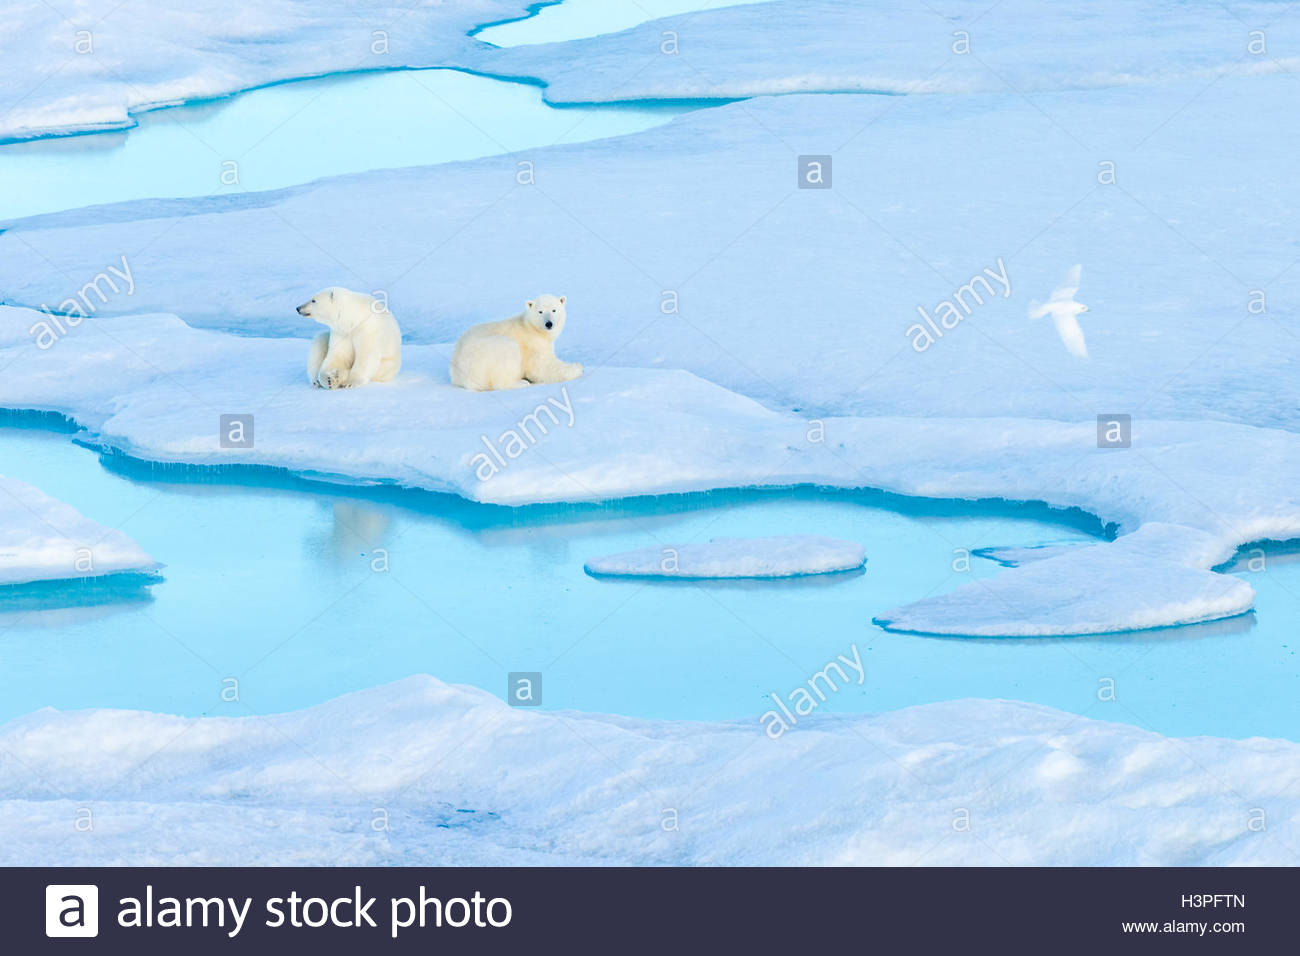 Resting polar bear cubs (Ursus maritimus) on an ice floe while an Ivory Gull flies by, Polar Bear Pass in Lancaster - Stock Image